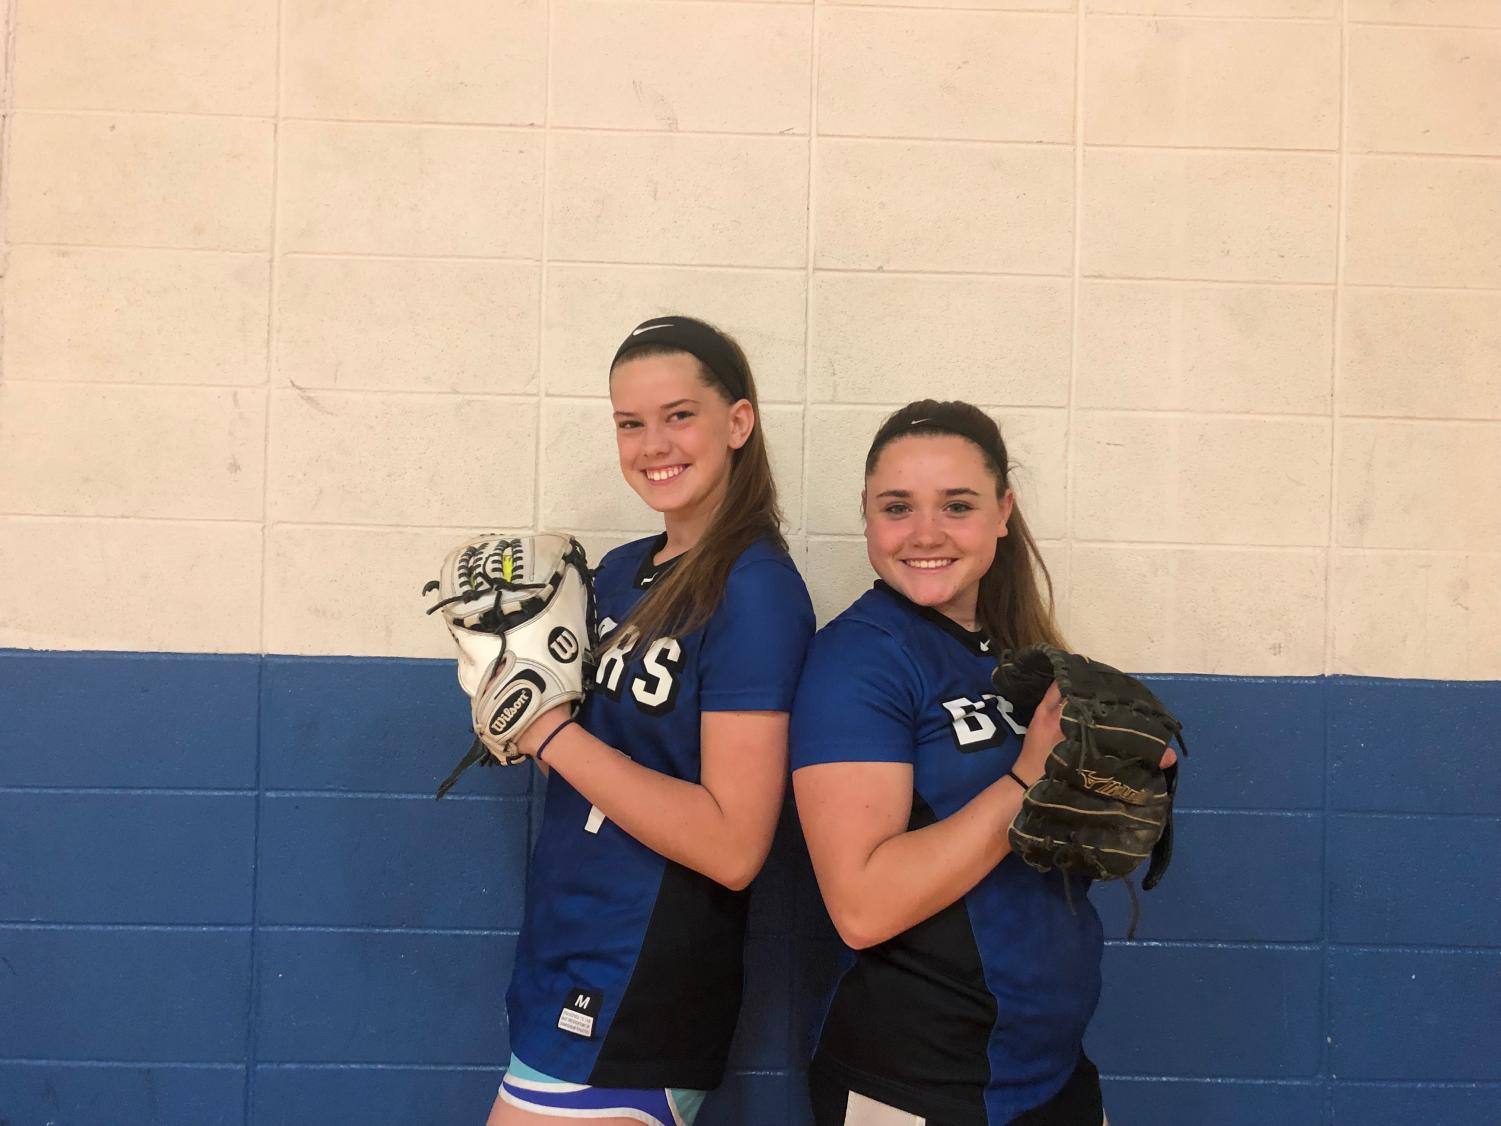 Seniors and best friends, Haley Gajewski and Julia Zaucha, pose for a photo in their softball gear. The two girls have been teammates since middle school.